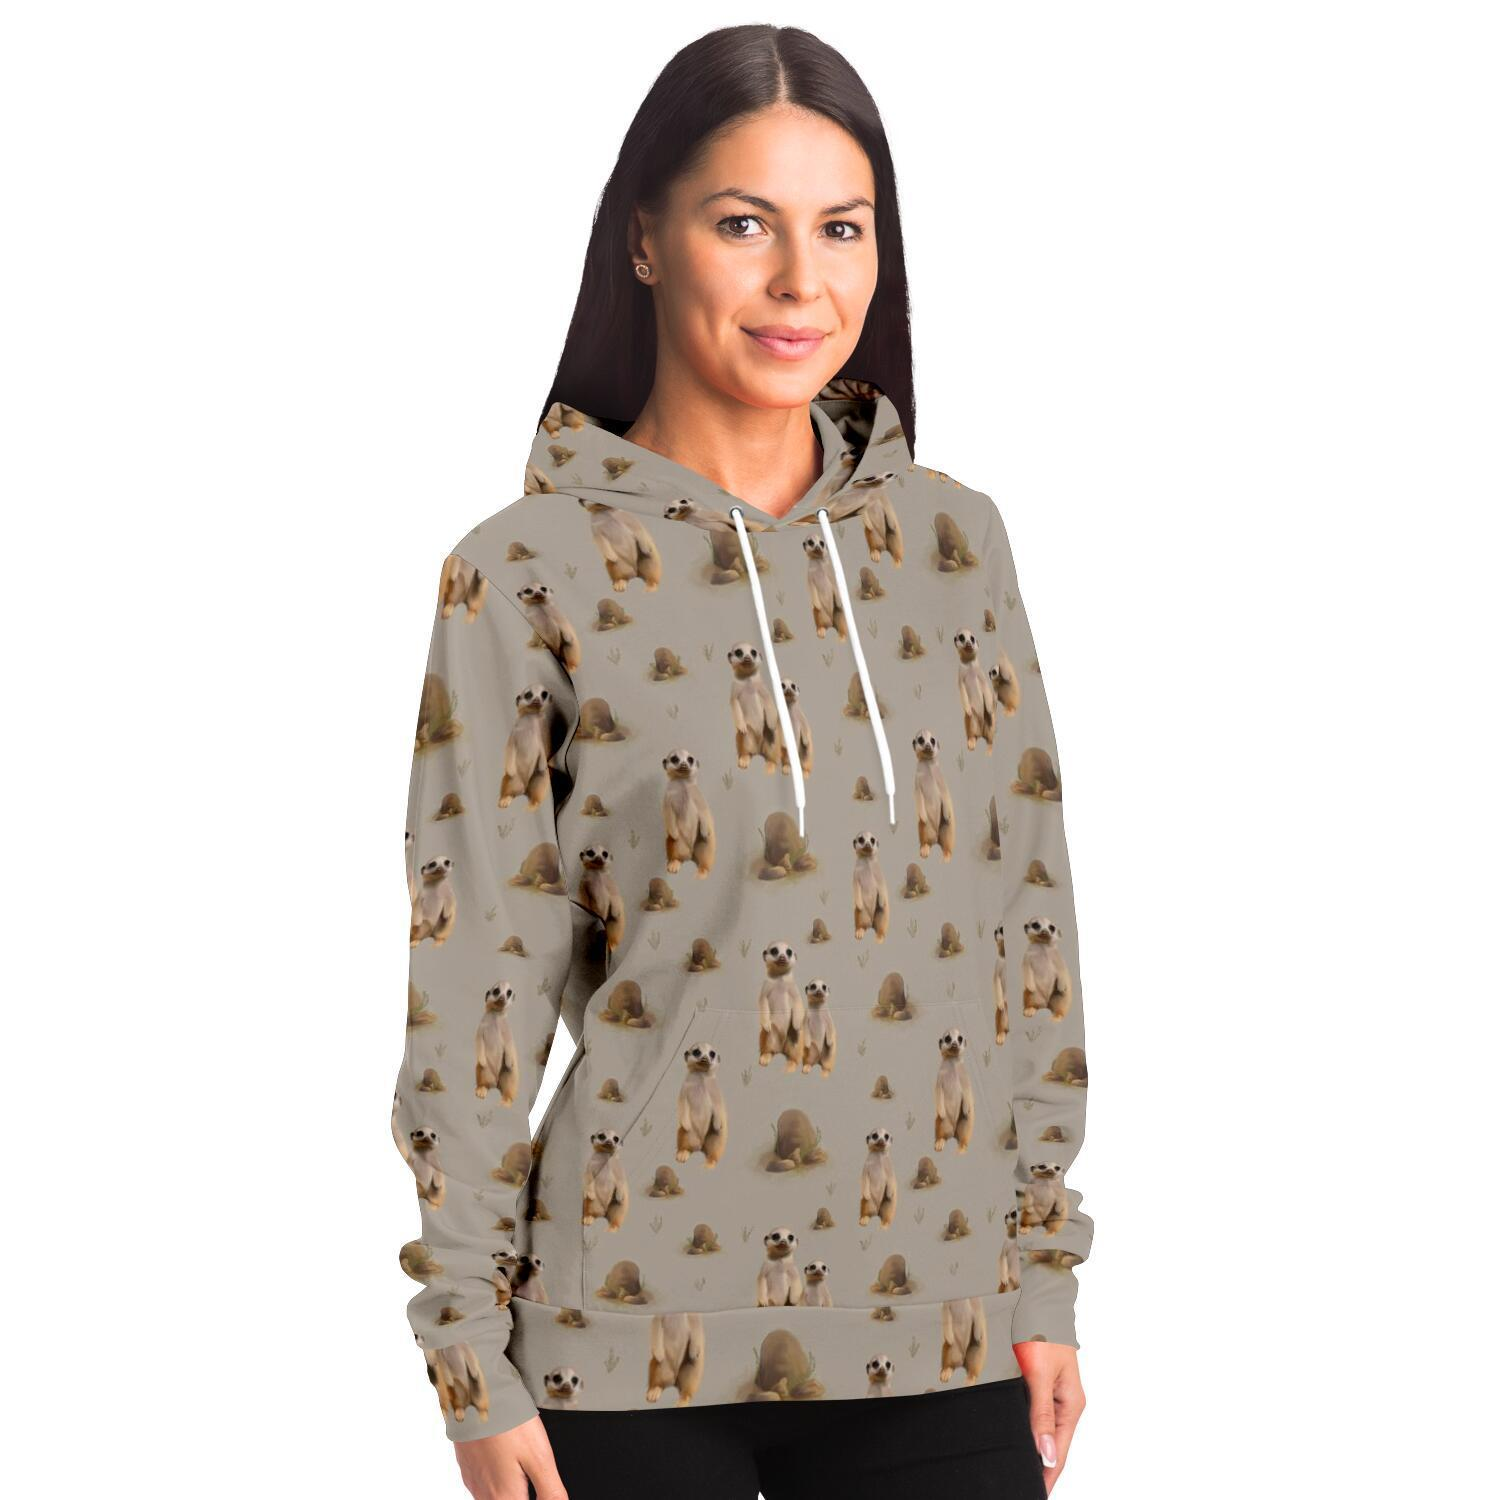 Meerkat Adults Hoodie - Fair Dinkum Fashion